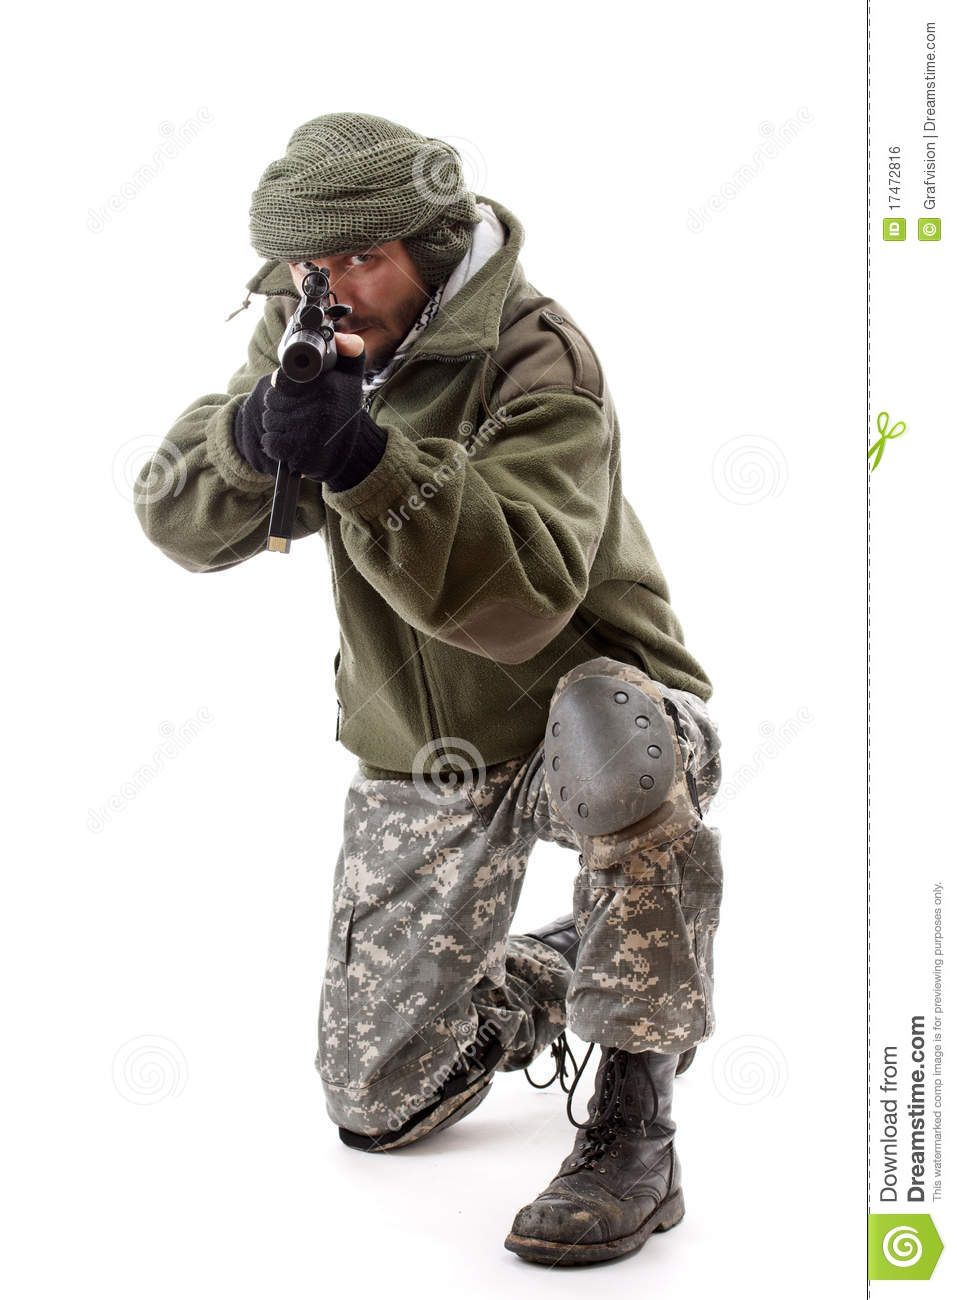 Terrorist Pointing Gun Royalty Free Stock Image Image